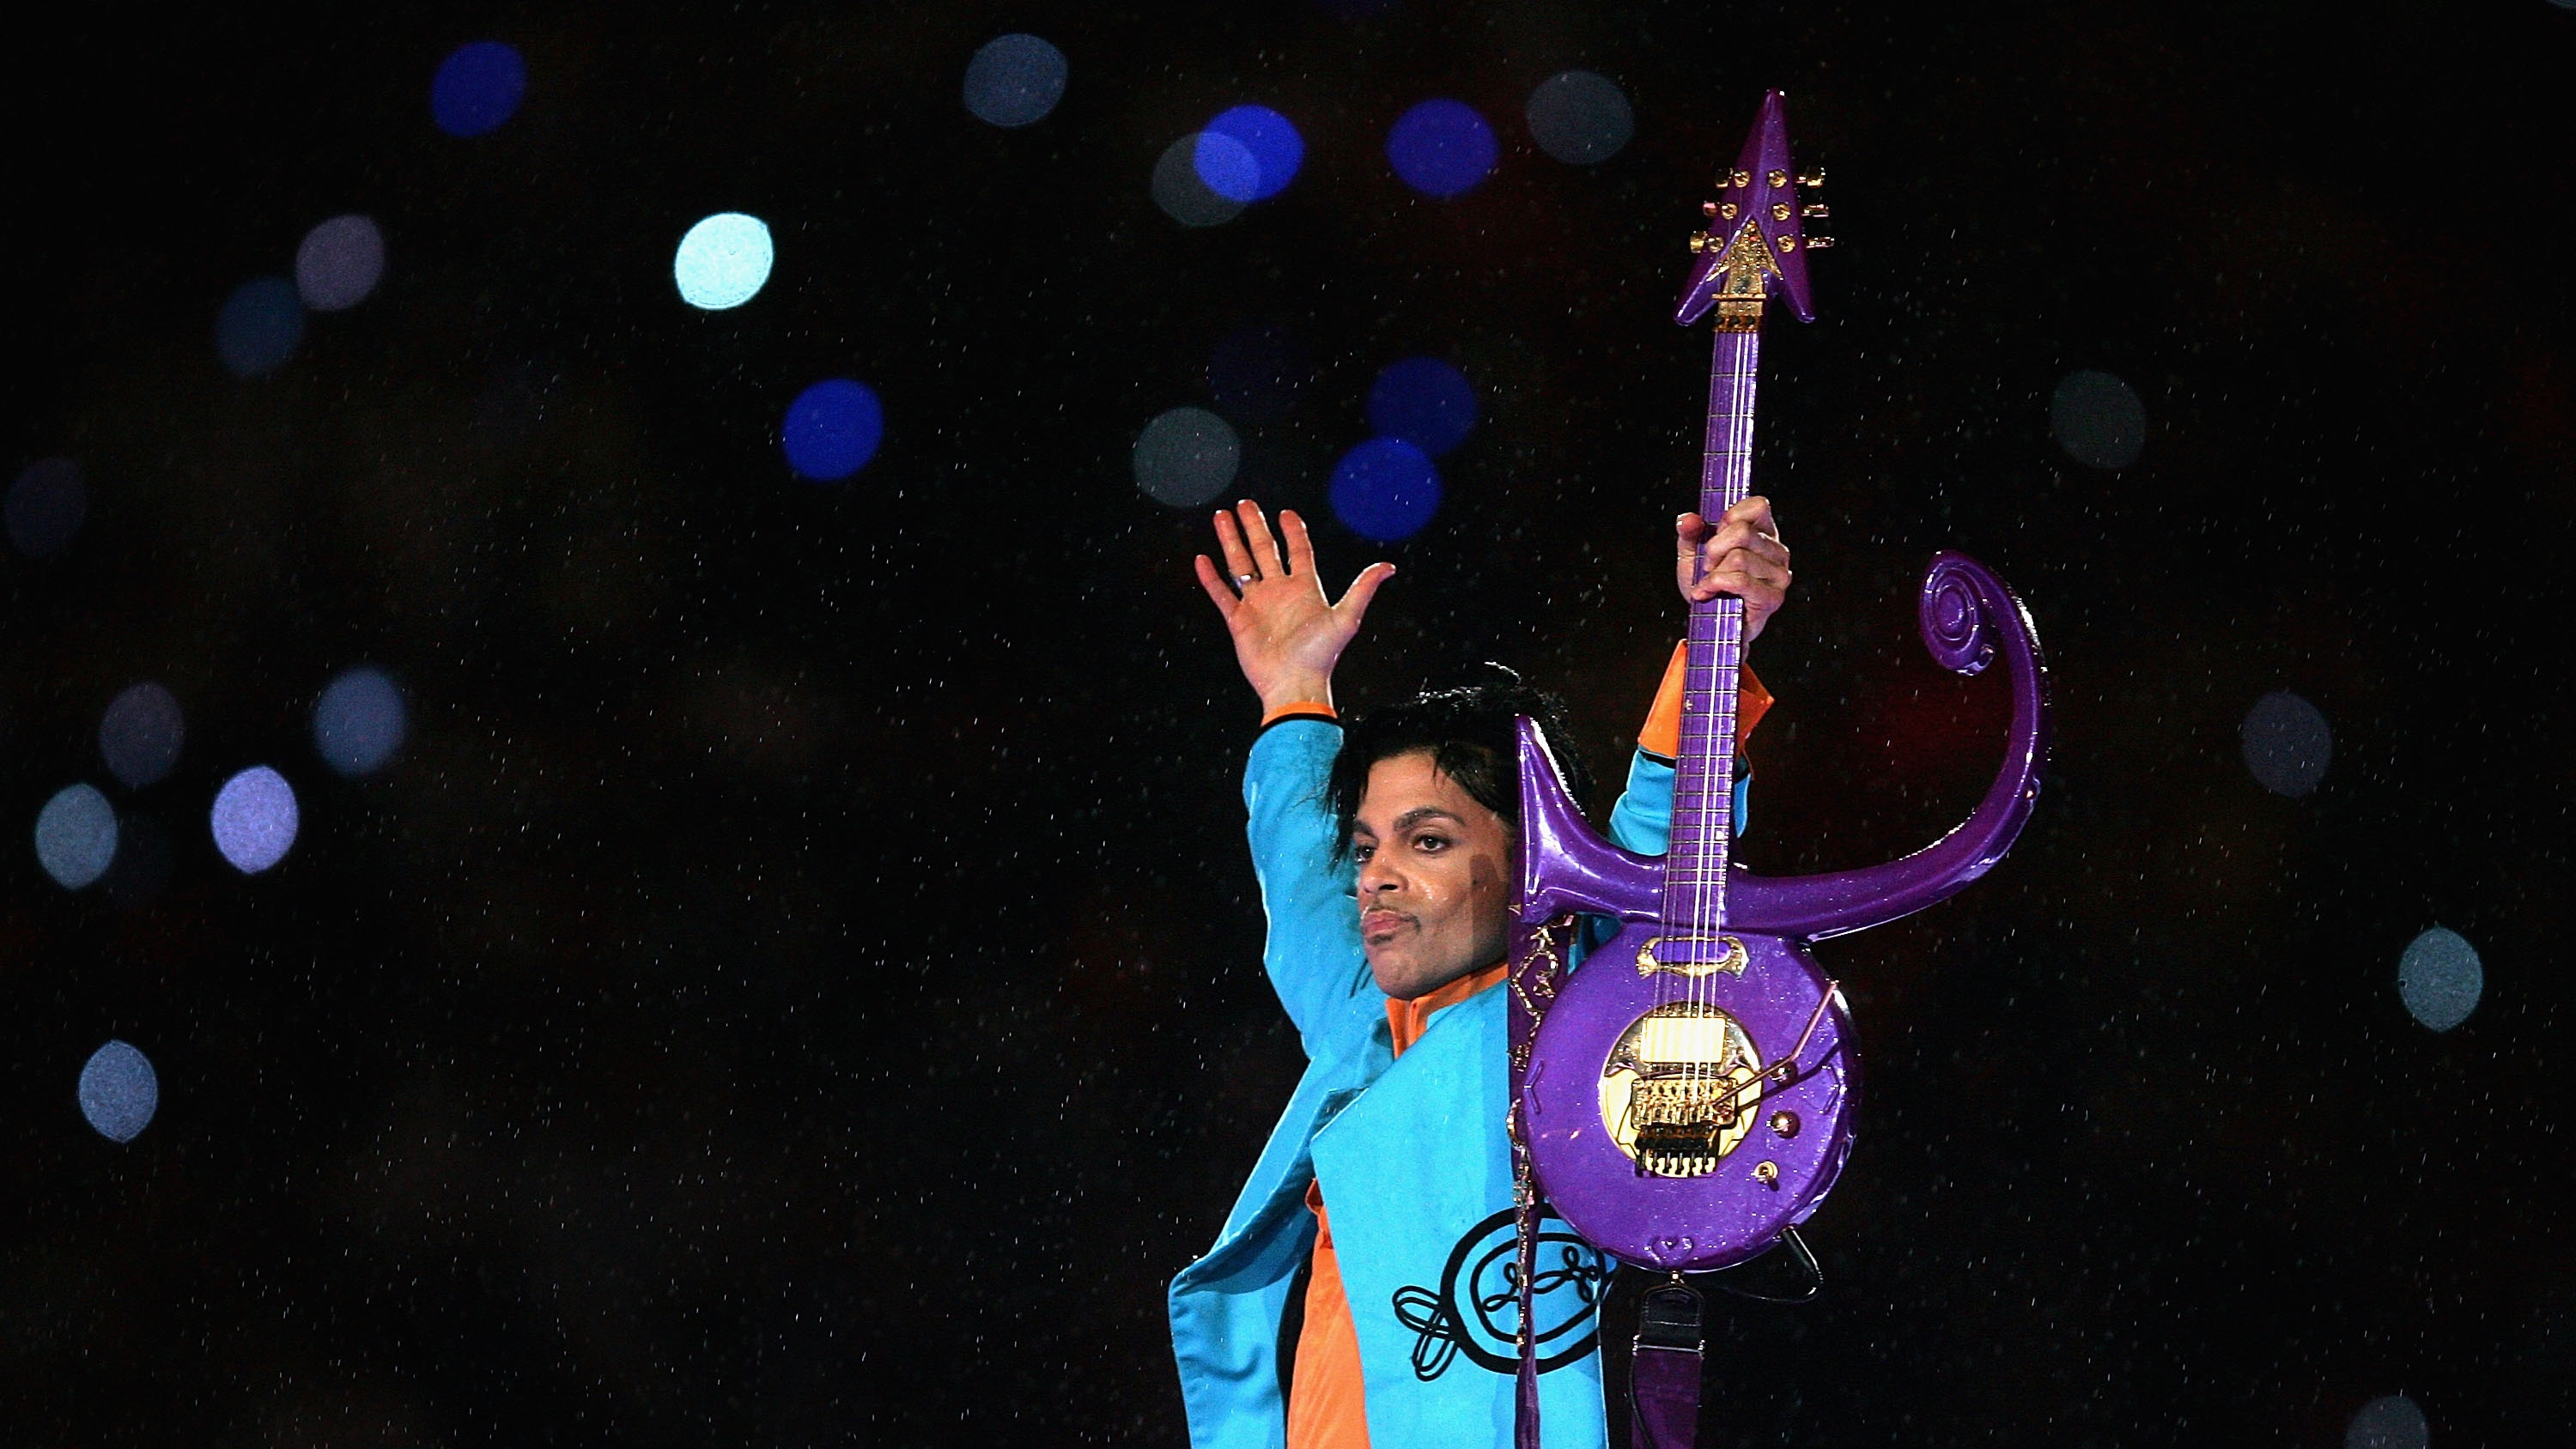 """Prince performs during the """"Pepsi Halftime Show"""" at Super Bowl XLI between the Indianapolis Colts and the Chicago Bears on February 4, 2007 at Dolphin Stadium in Miami Gardens, Florida."""